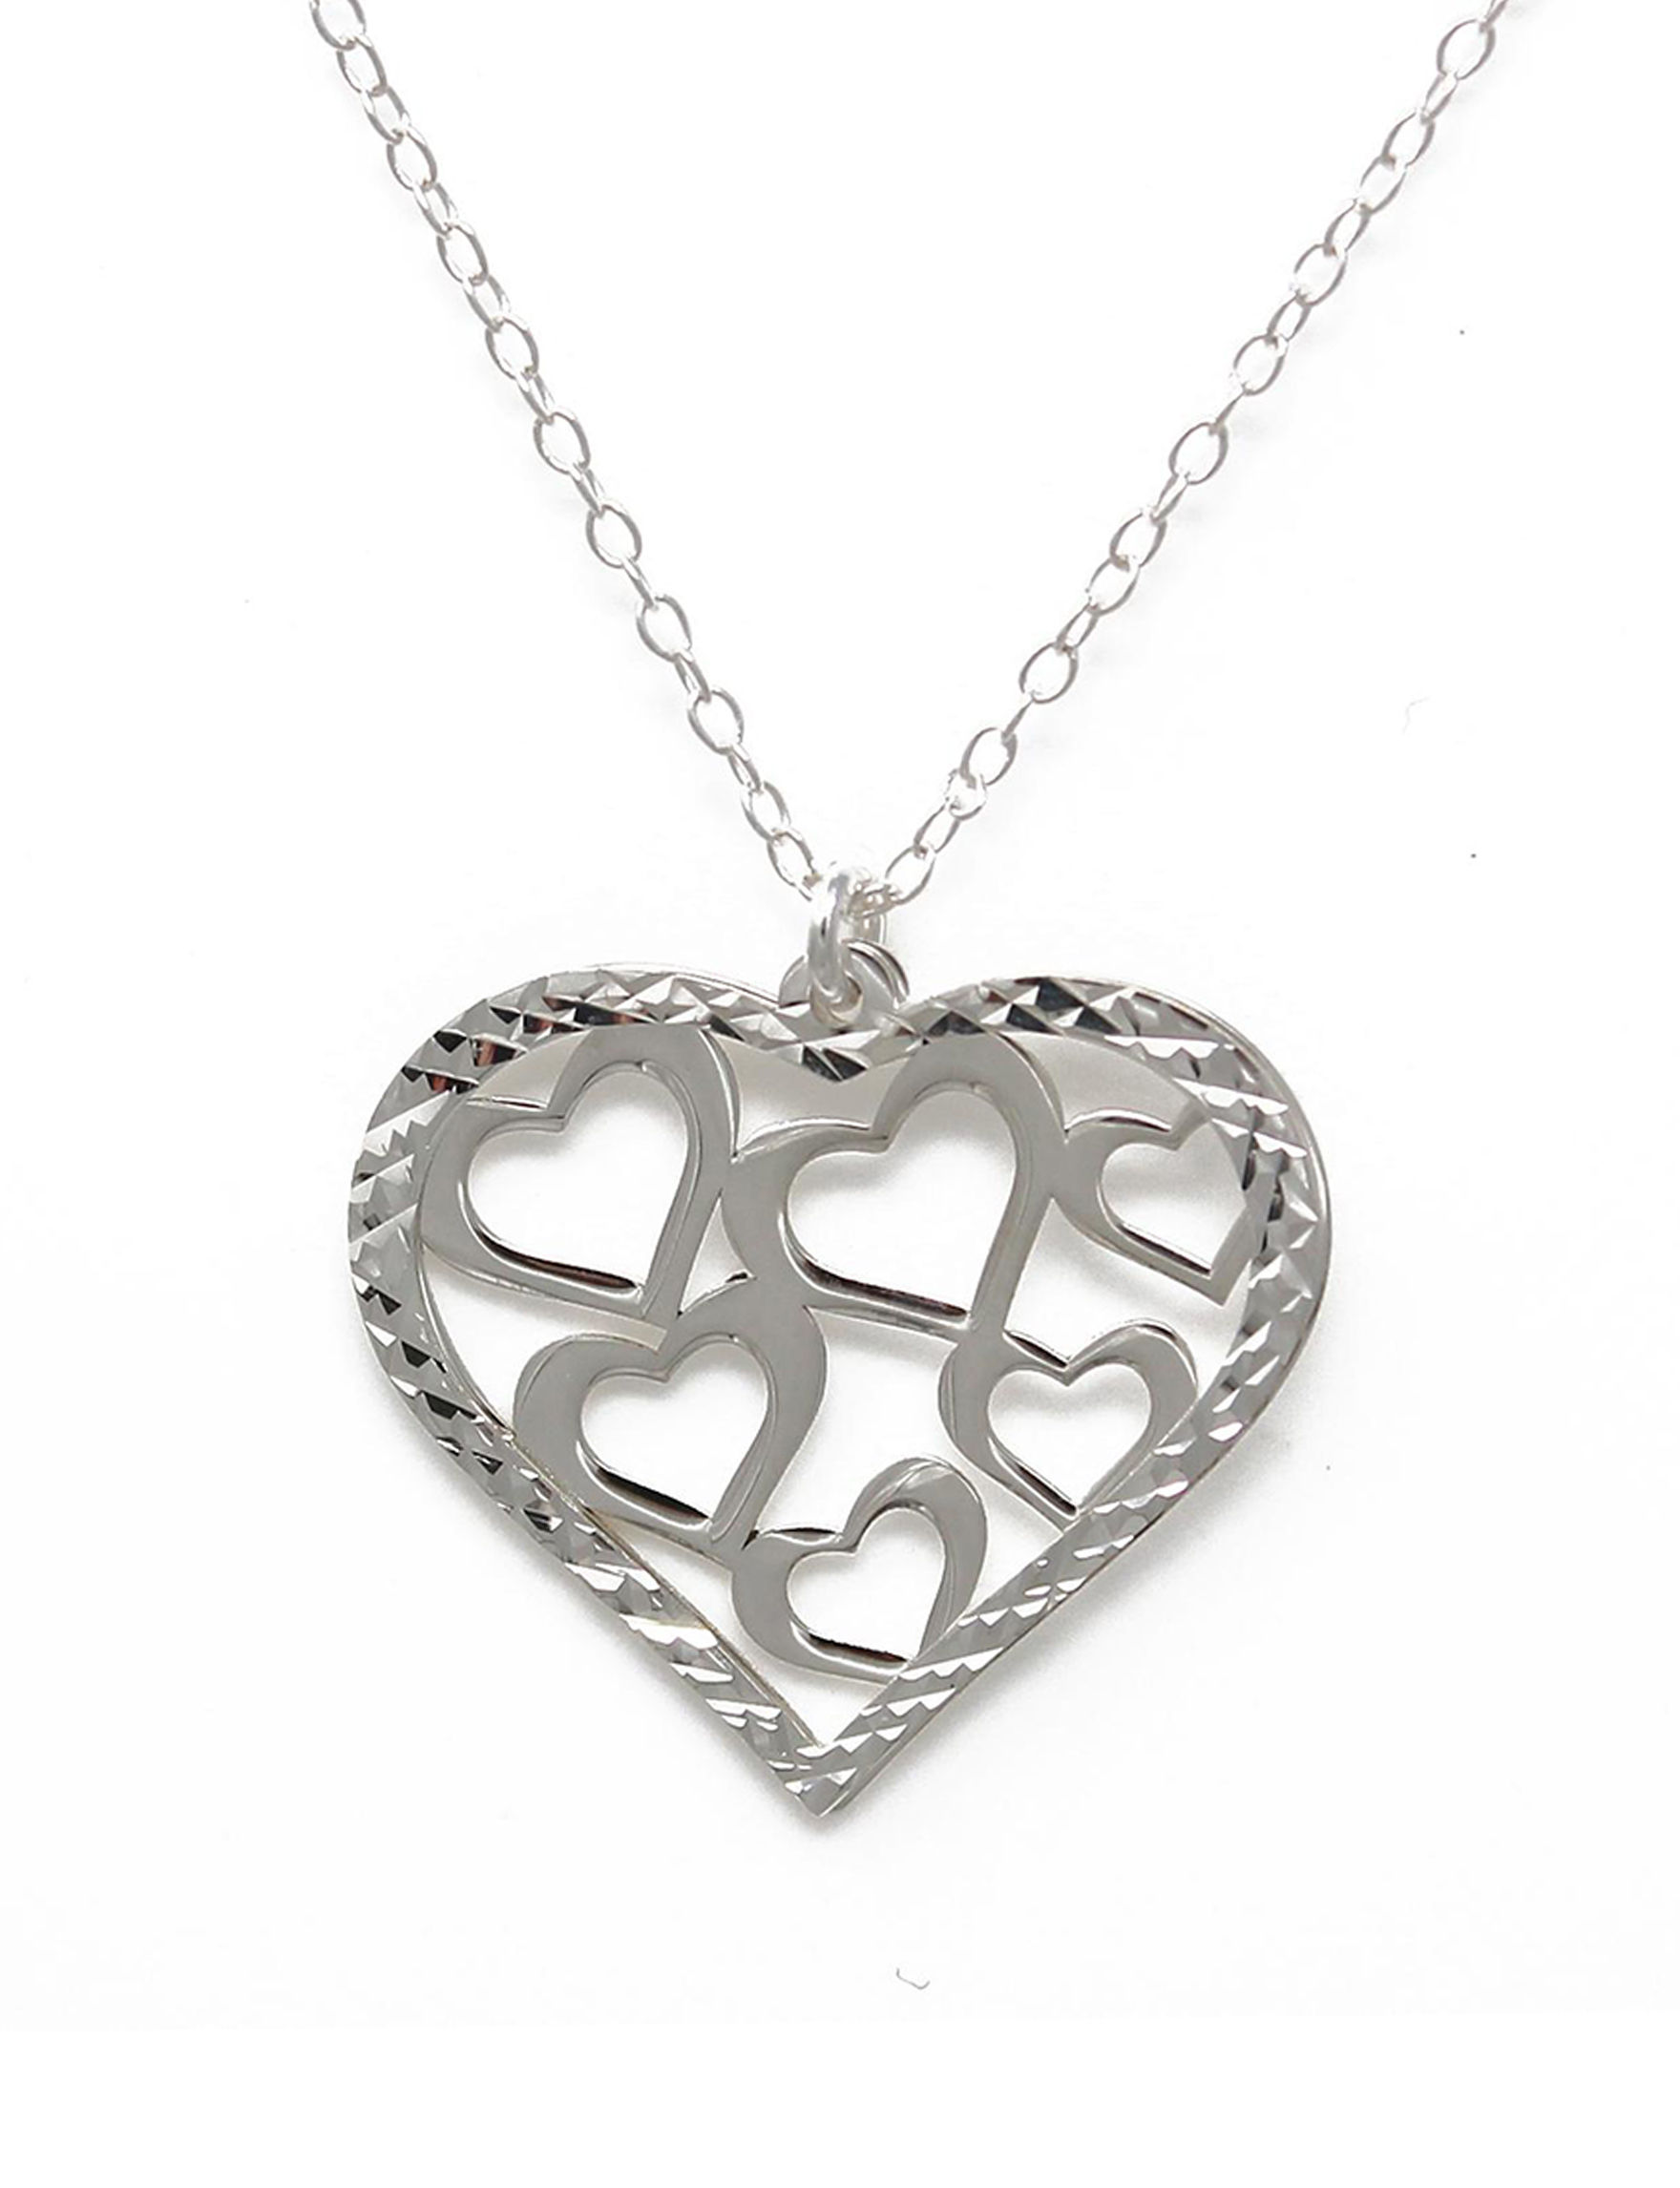 L & J Sterling Silver Necklaces & Pendants Fine Jewelry